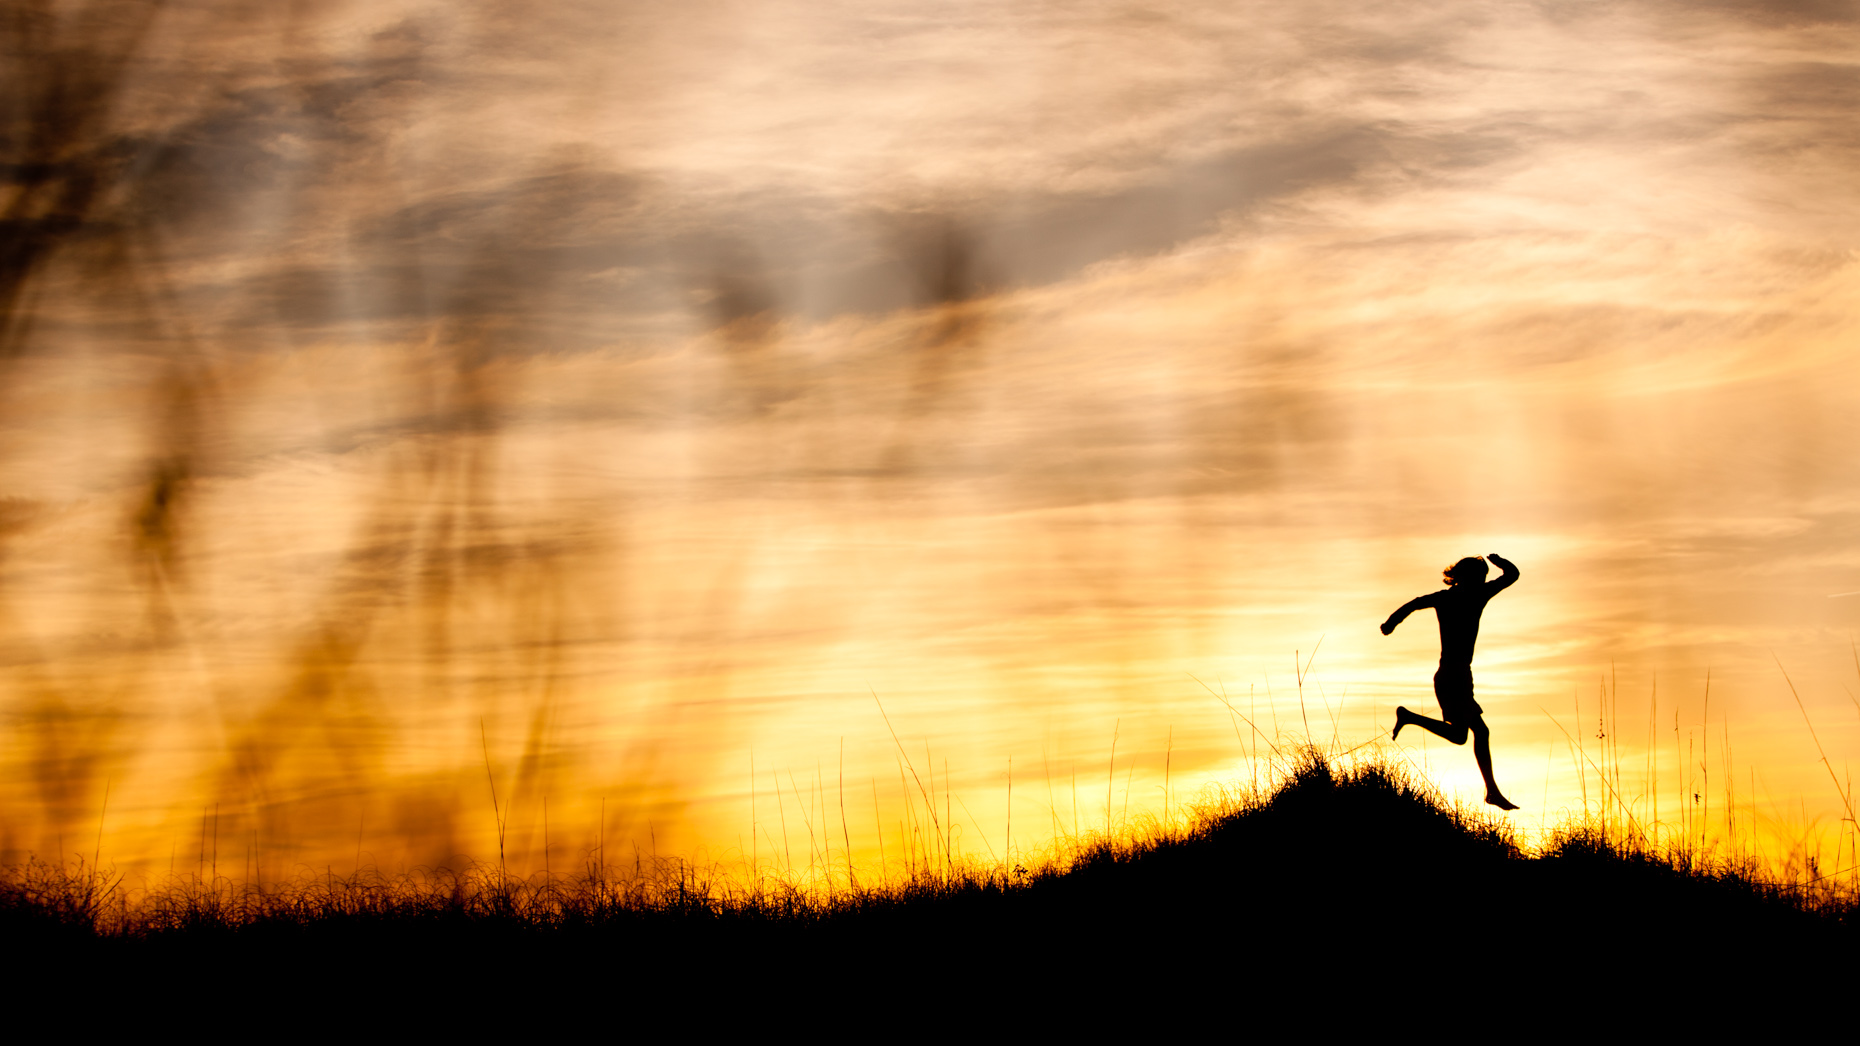 Adventure-Adventure and outdoor lifestyle photogaph by Forest Woodward runner on Cumberland Island USA